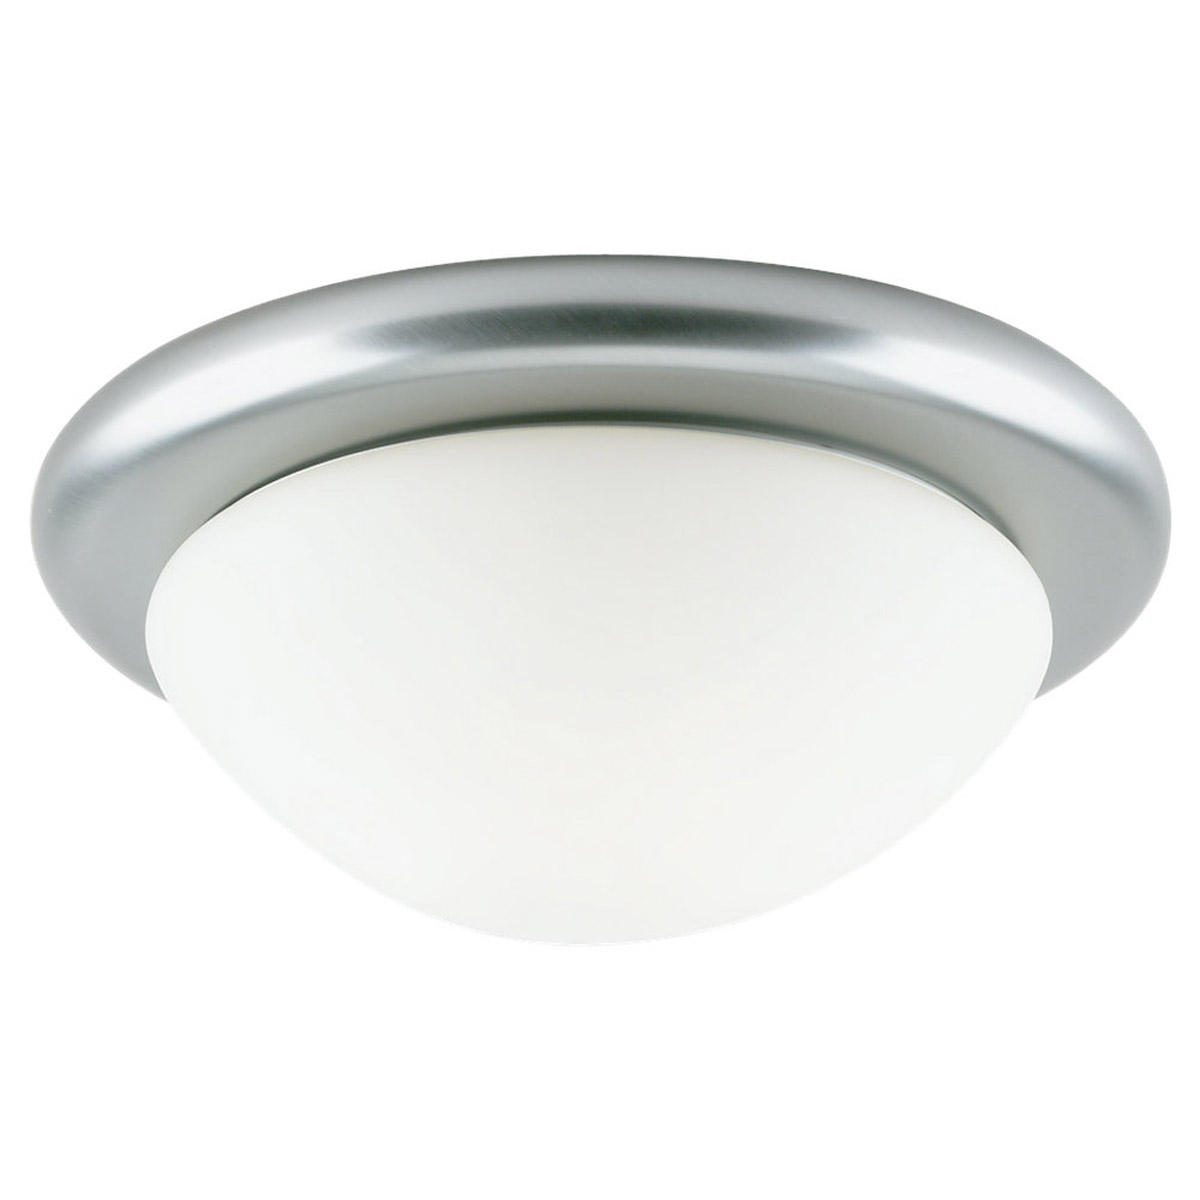 Sea Gull Lighting Signature 2 Light Flush Mount in Brushed Nickel 53070-962